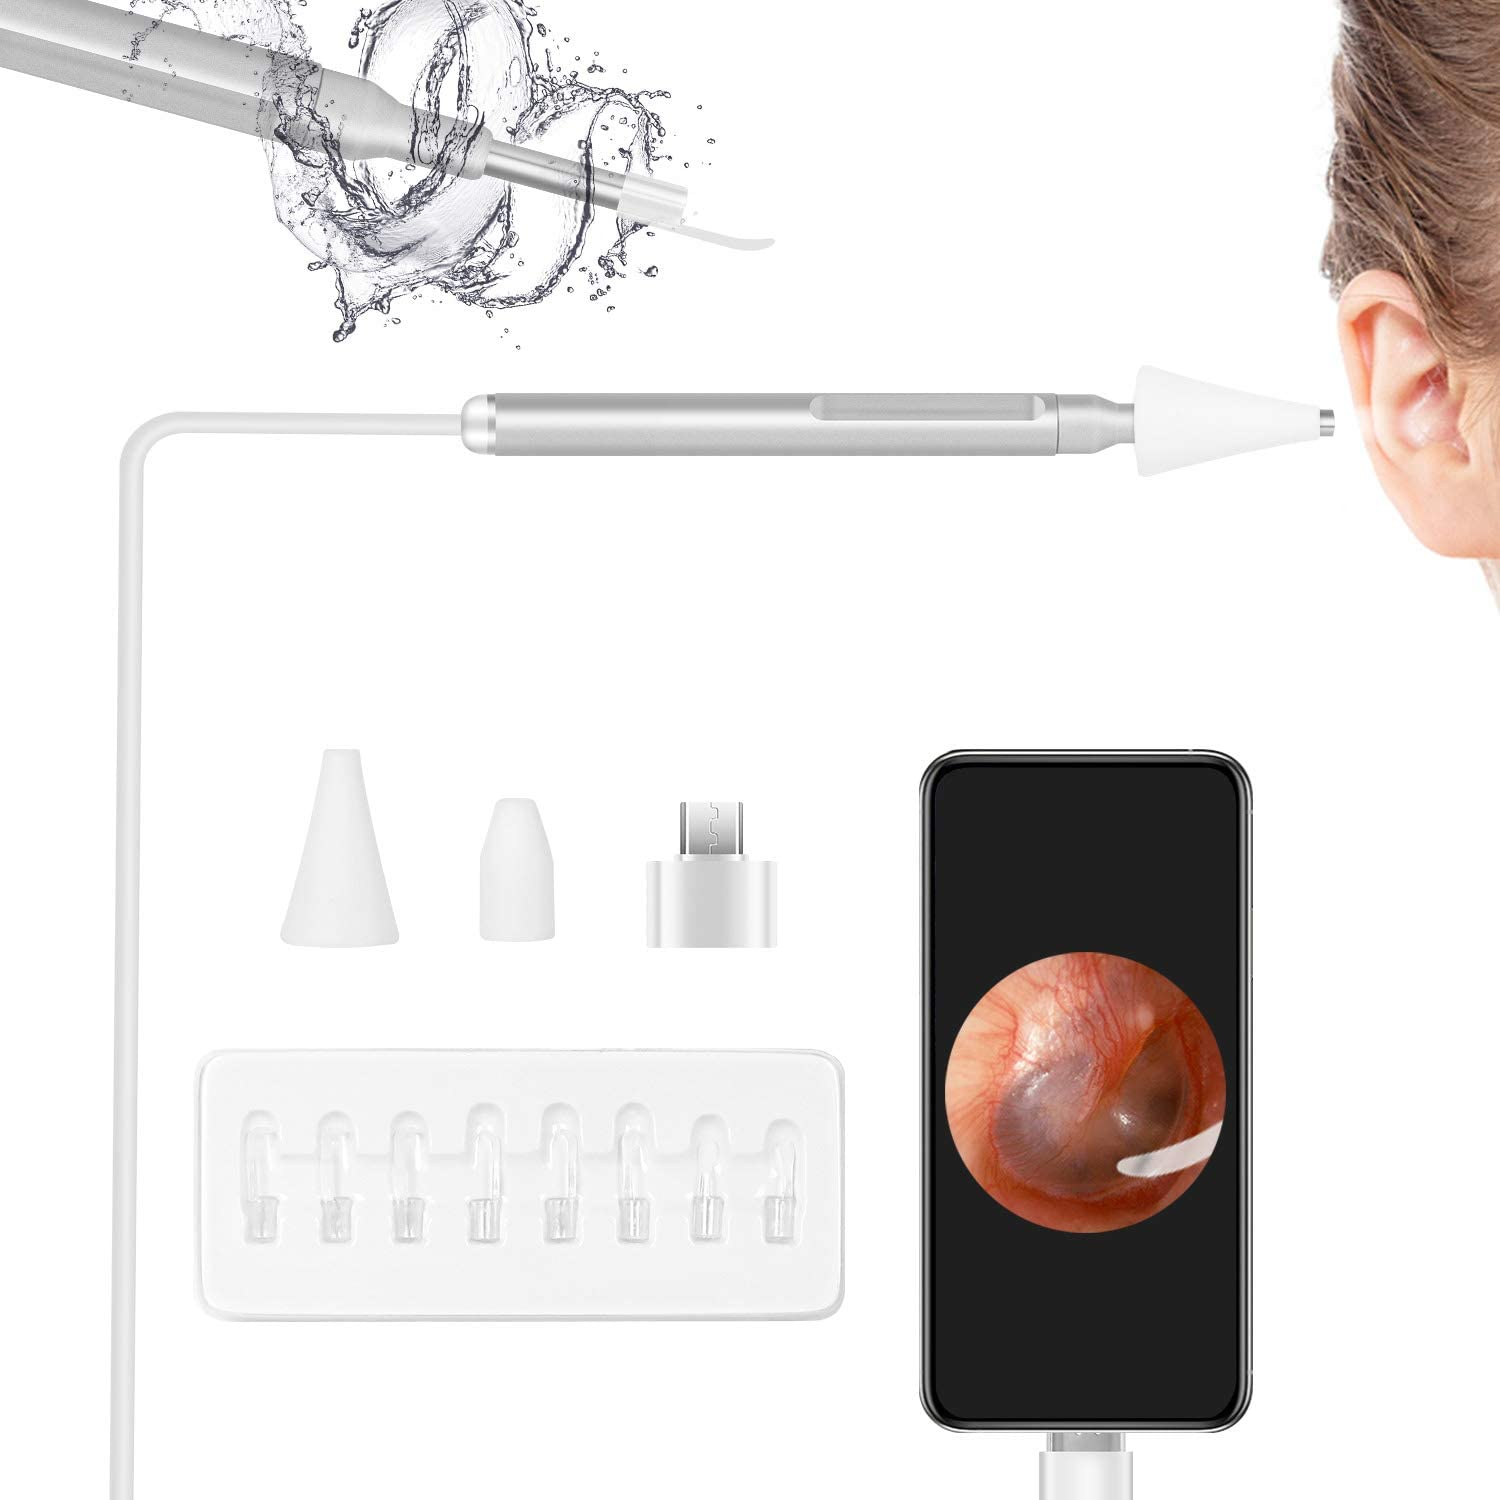 LAYADO Otoscope Camera with Ear Wax Tools Removal New color Bargain sale Upg